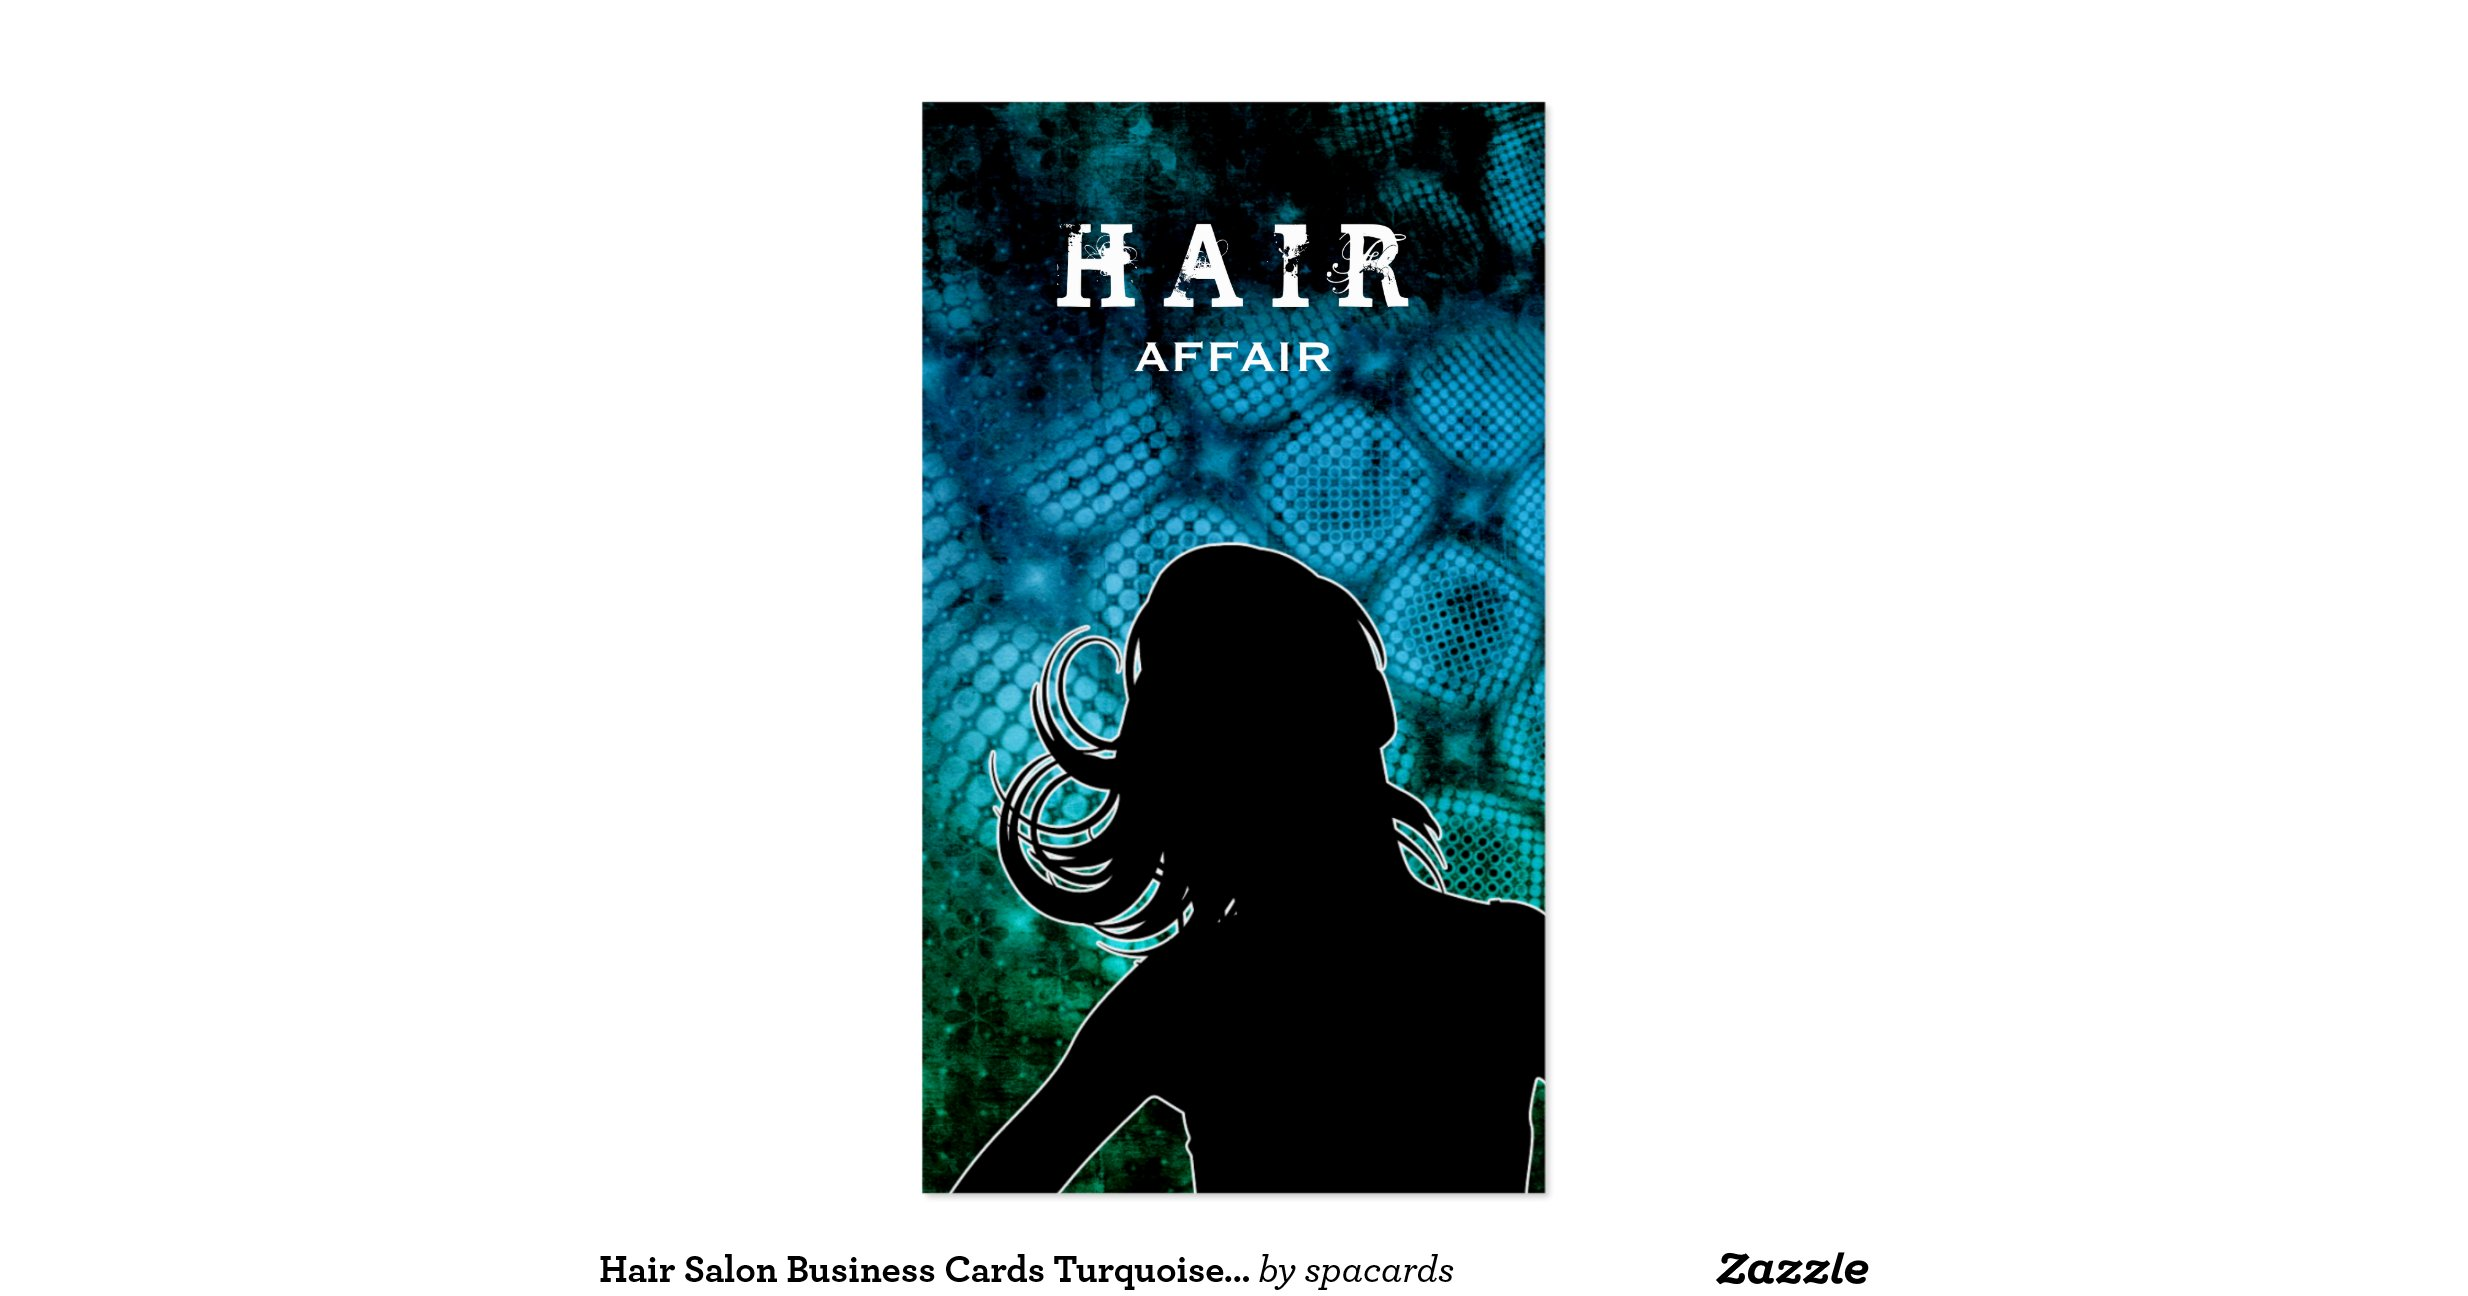 Hair salon business cards turquoise blue for Salon turquoise